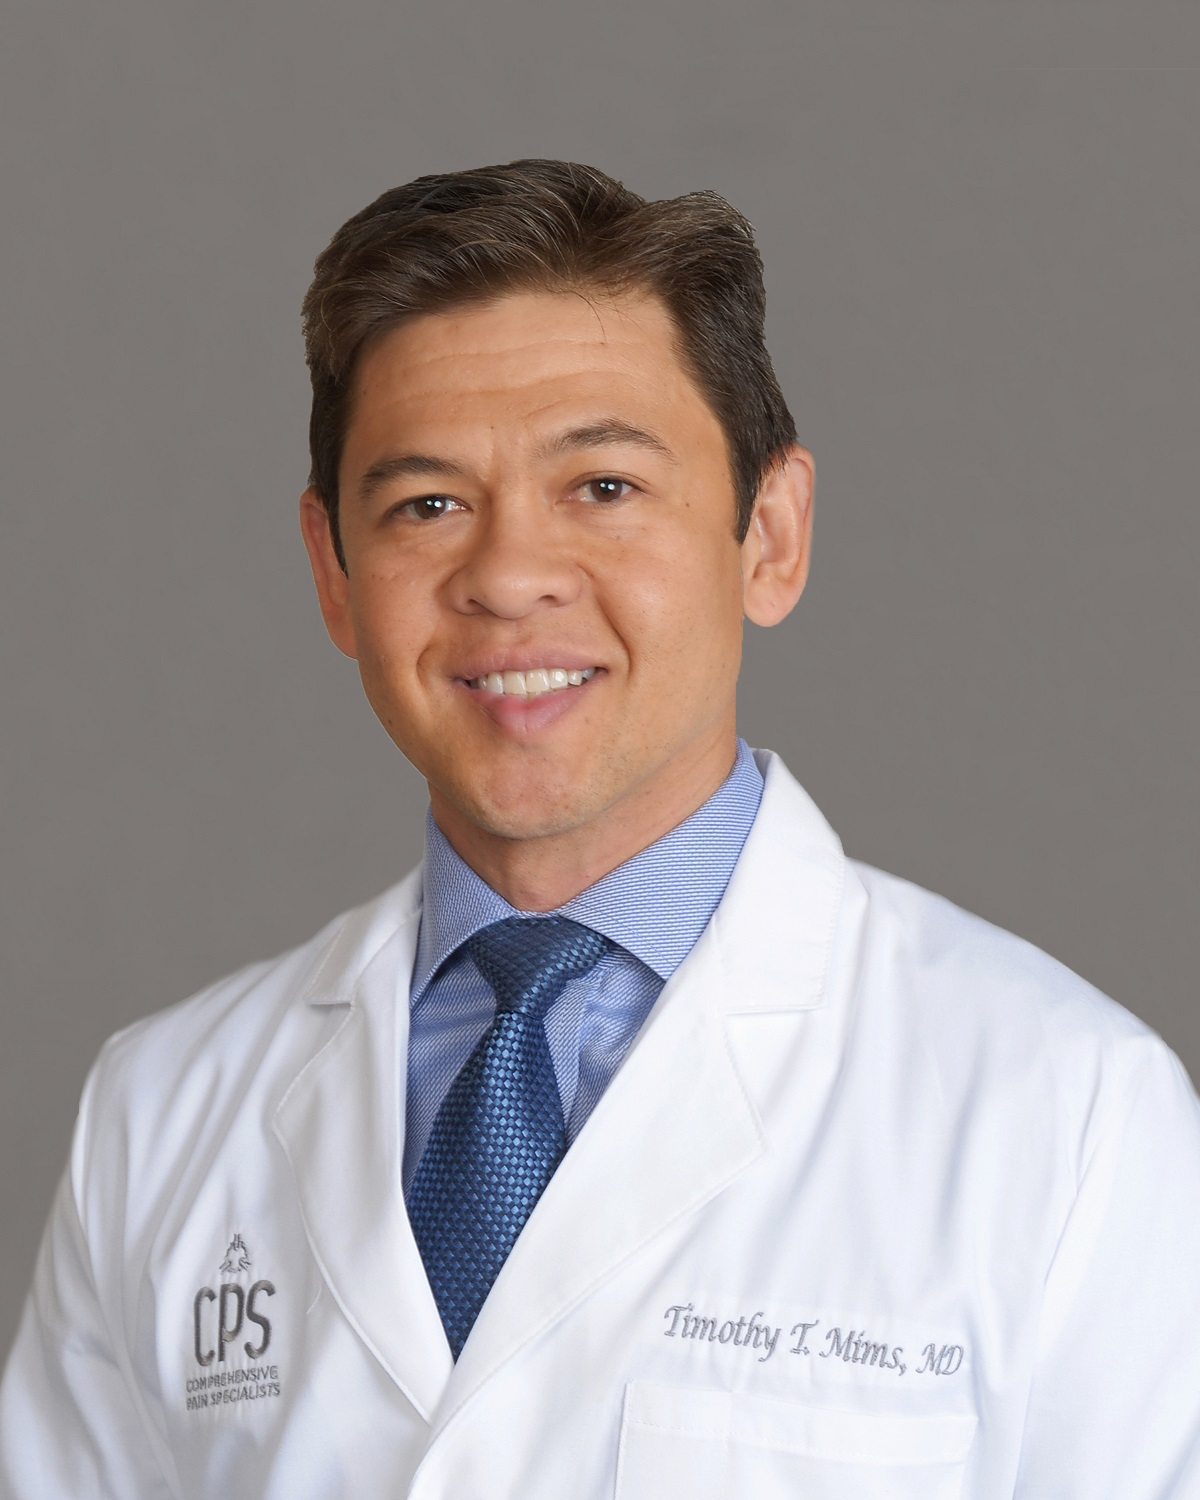 Timothy T Mims, MD